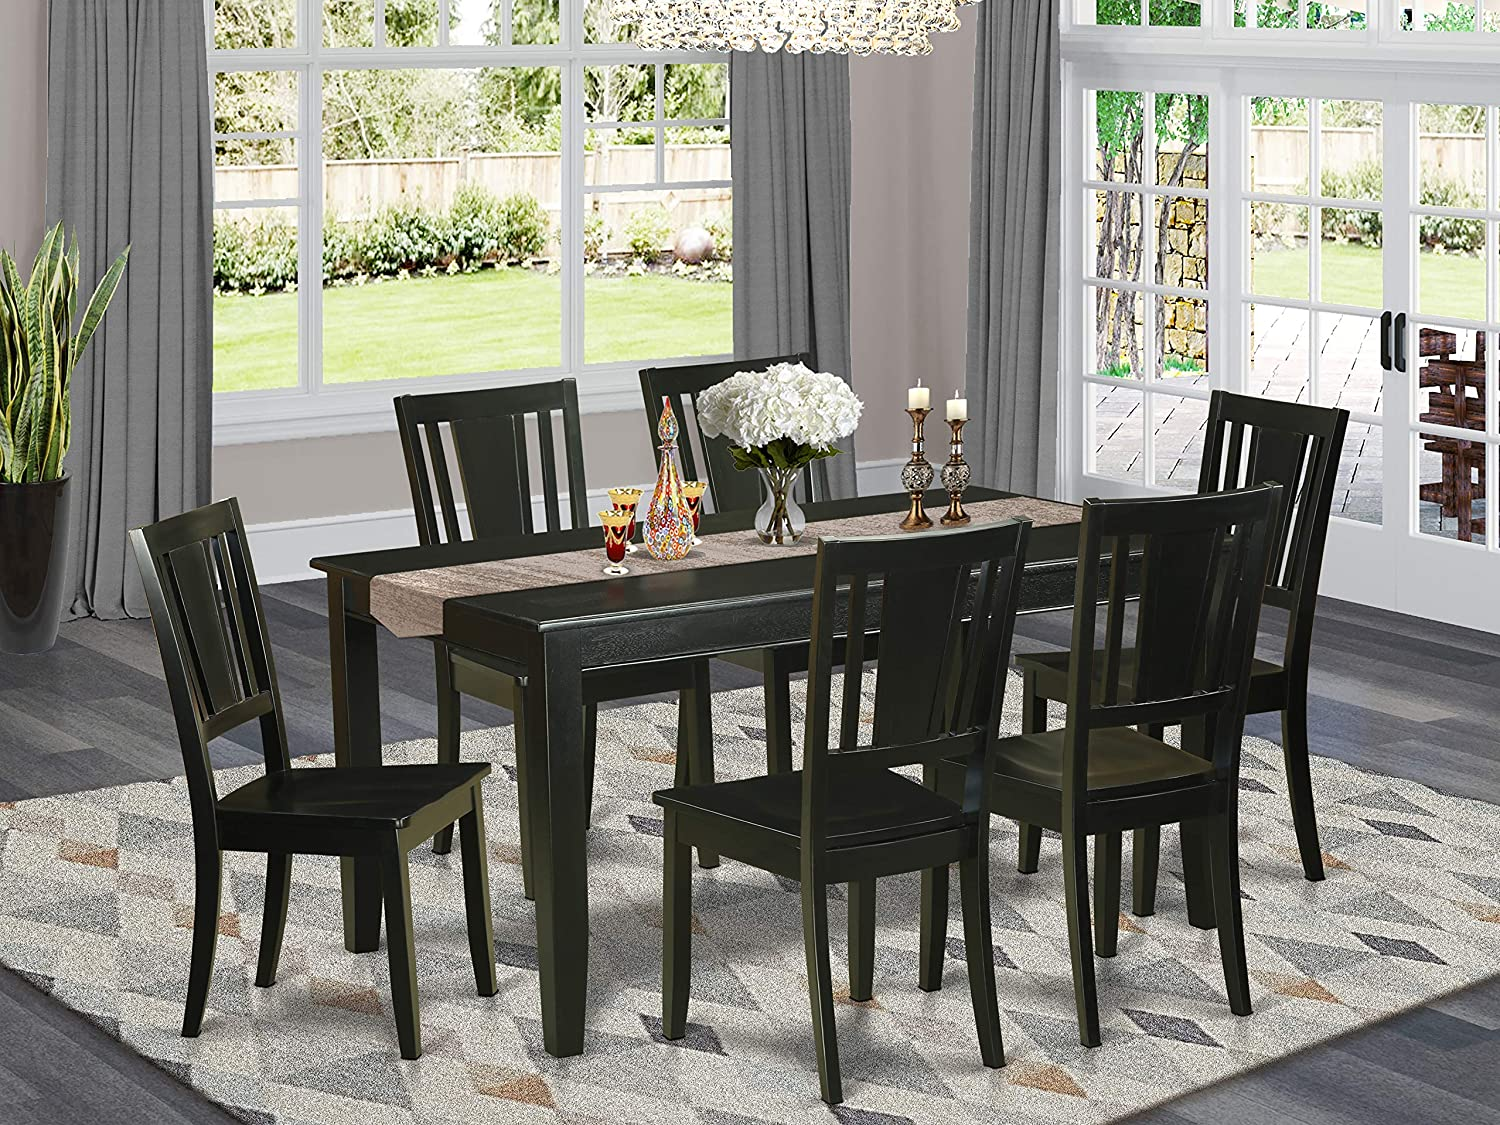 East West Furniture store Piece Dinette Set a low-pricing Rectangu Modern Included